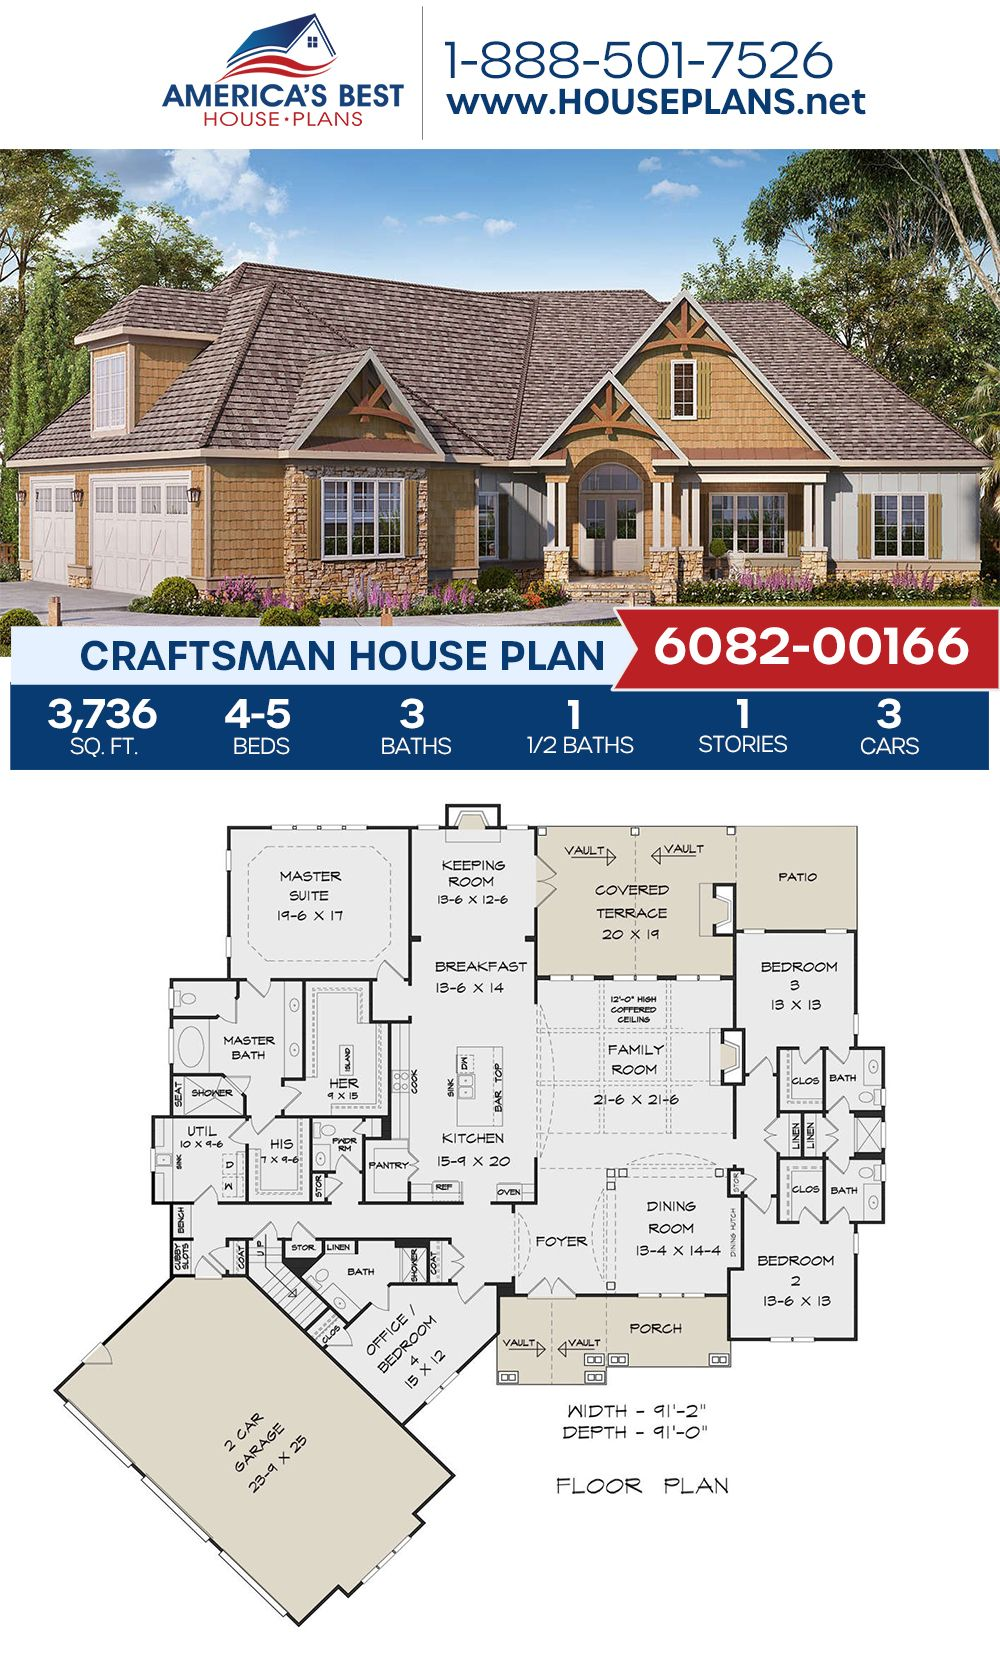 House Plan 6082 00166 Craftsman Plan 3 736 Square Feet 4 5 Bedrooms 3 5 Bathrooms In 2020 Lake House Plans Affordable House Plans Craftsman House Plans